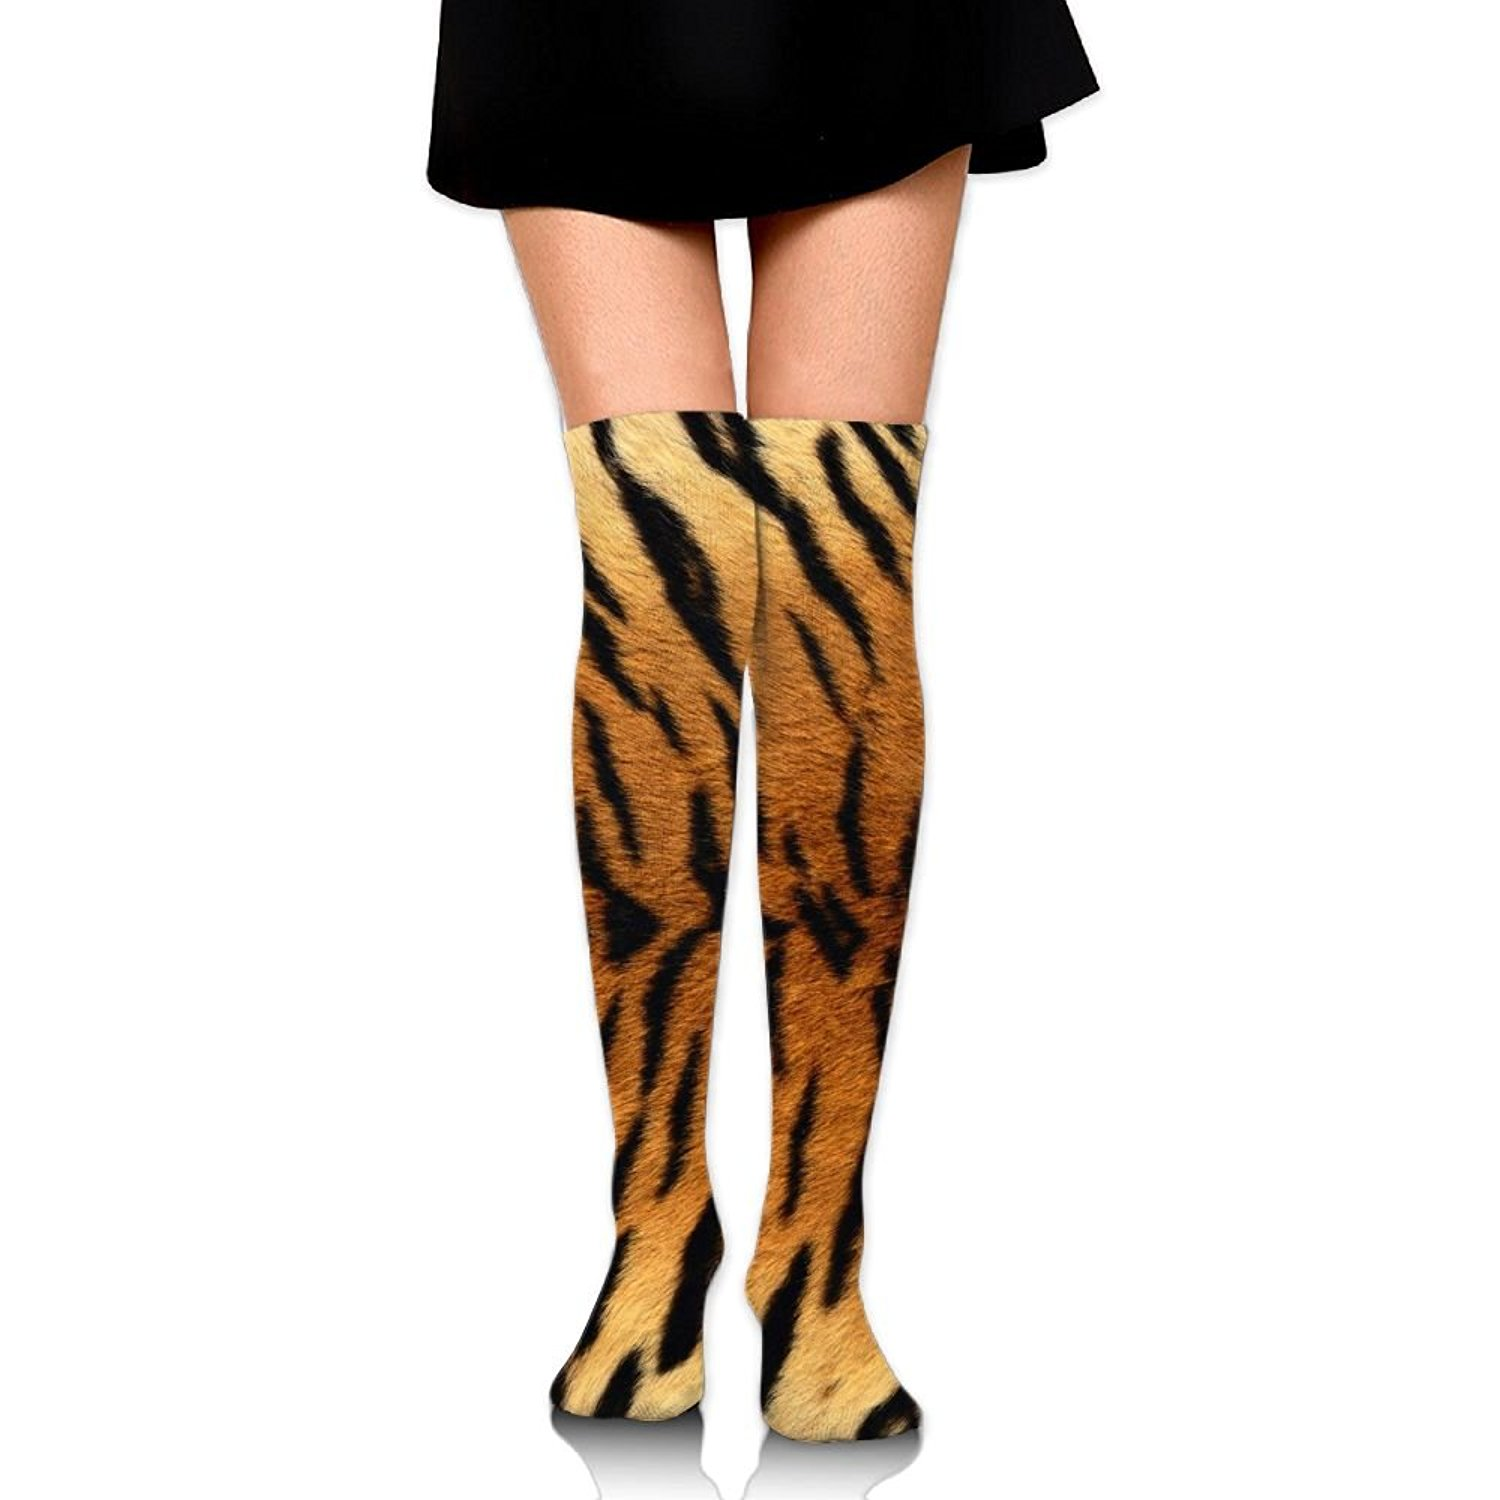 10c5b959795 Get Quotations · Fengyaojianzhu Women s Tube Stockings Tiger Stripes Over  The Knee Unisex Knee High Long Socks